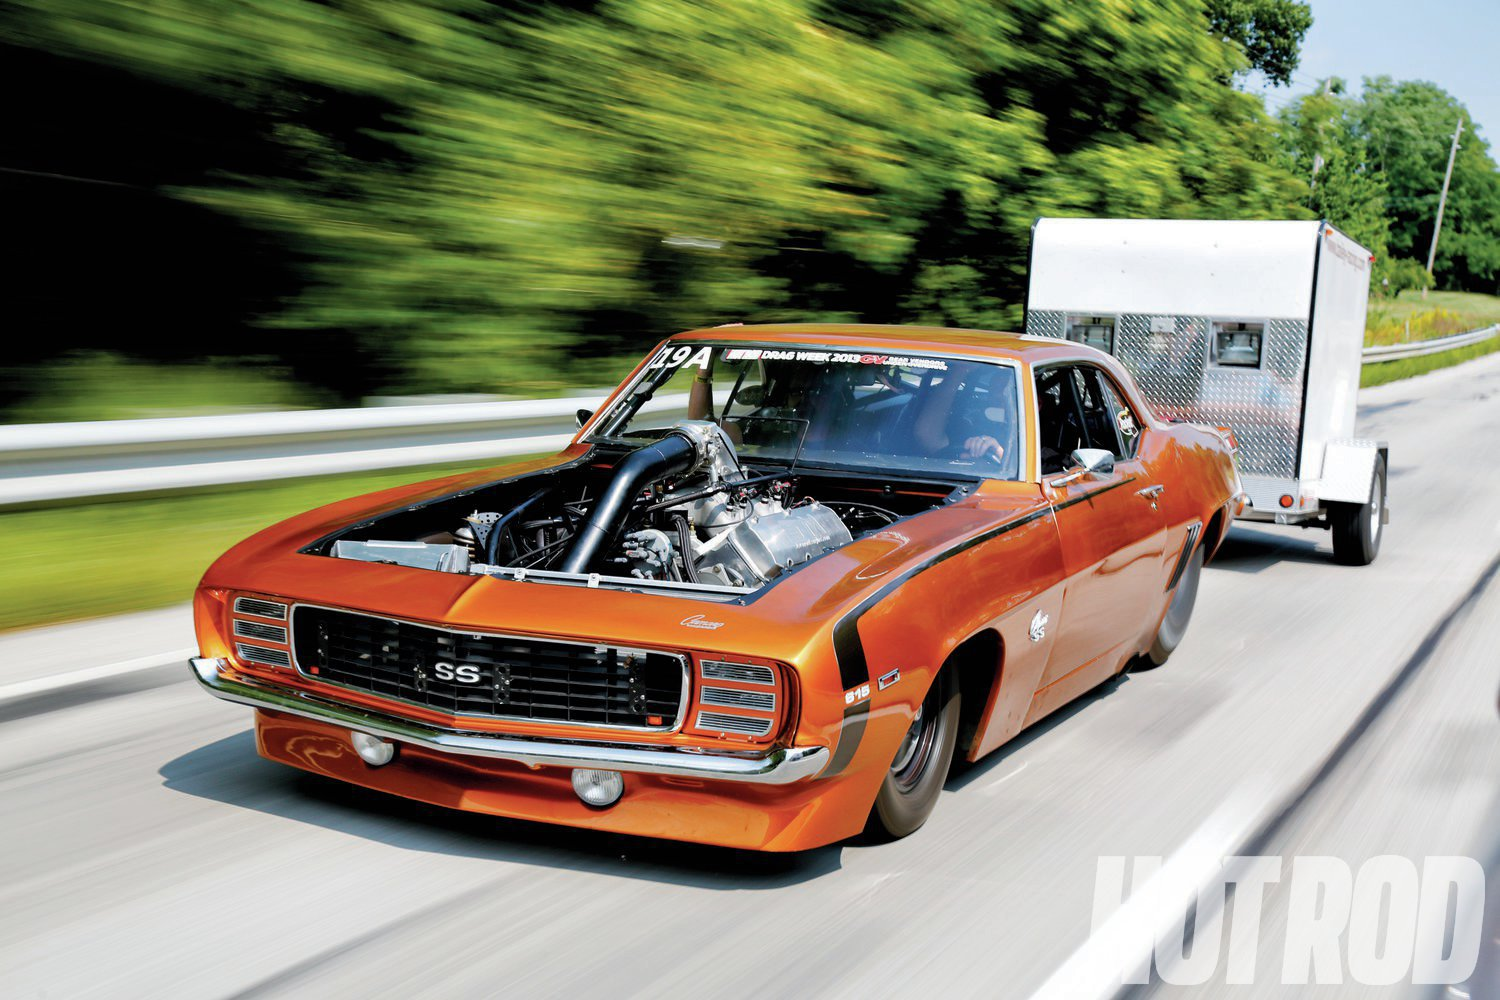 Tom Bailey's hoodless Camaro had few issues on the street, despite running a new-to-them torque converter.